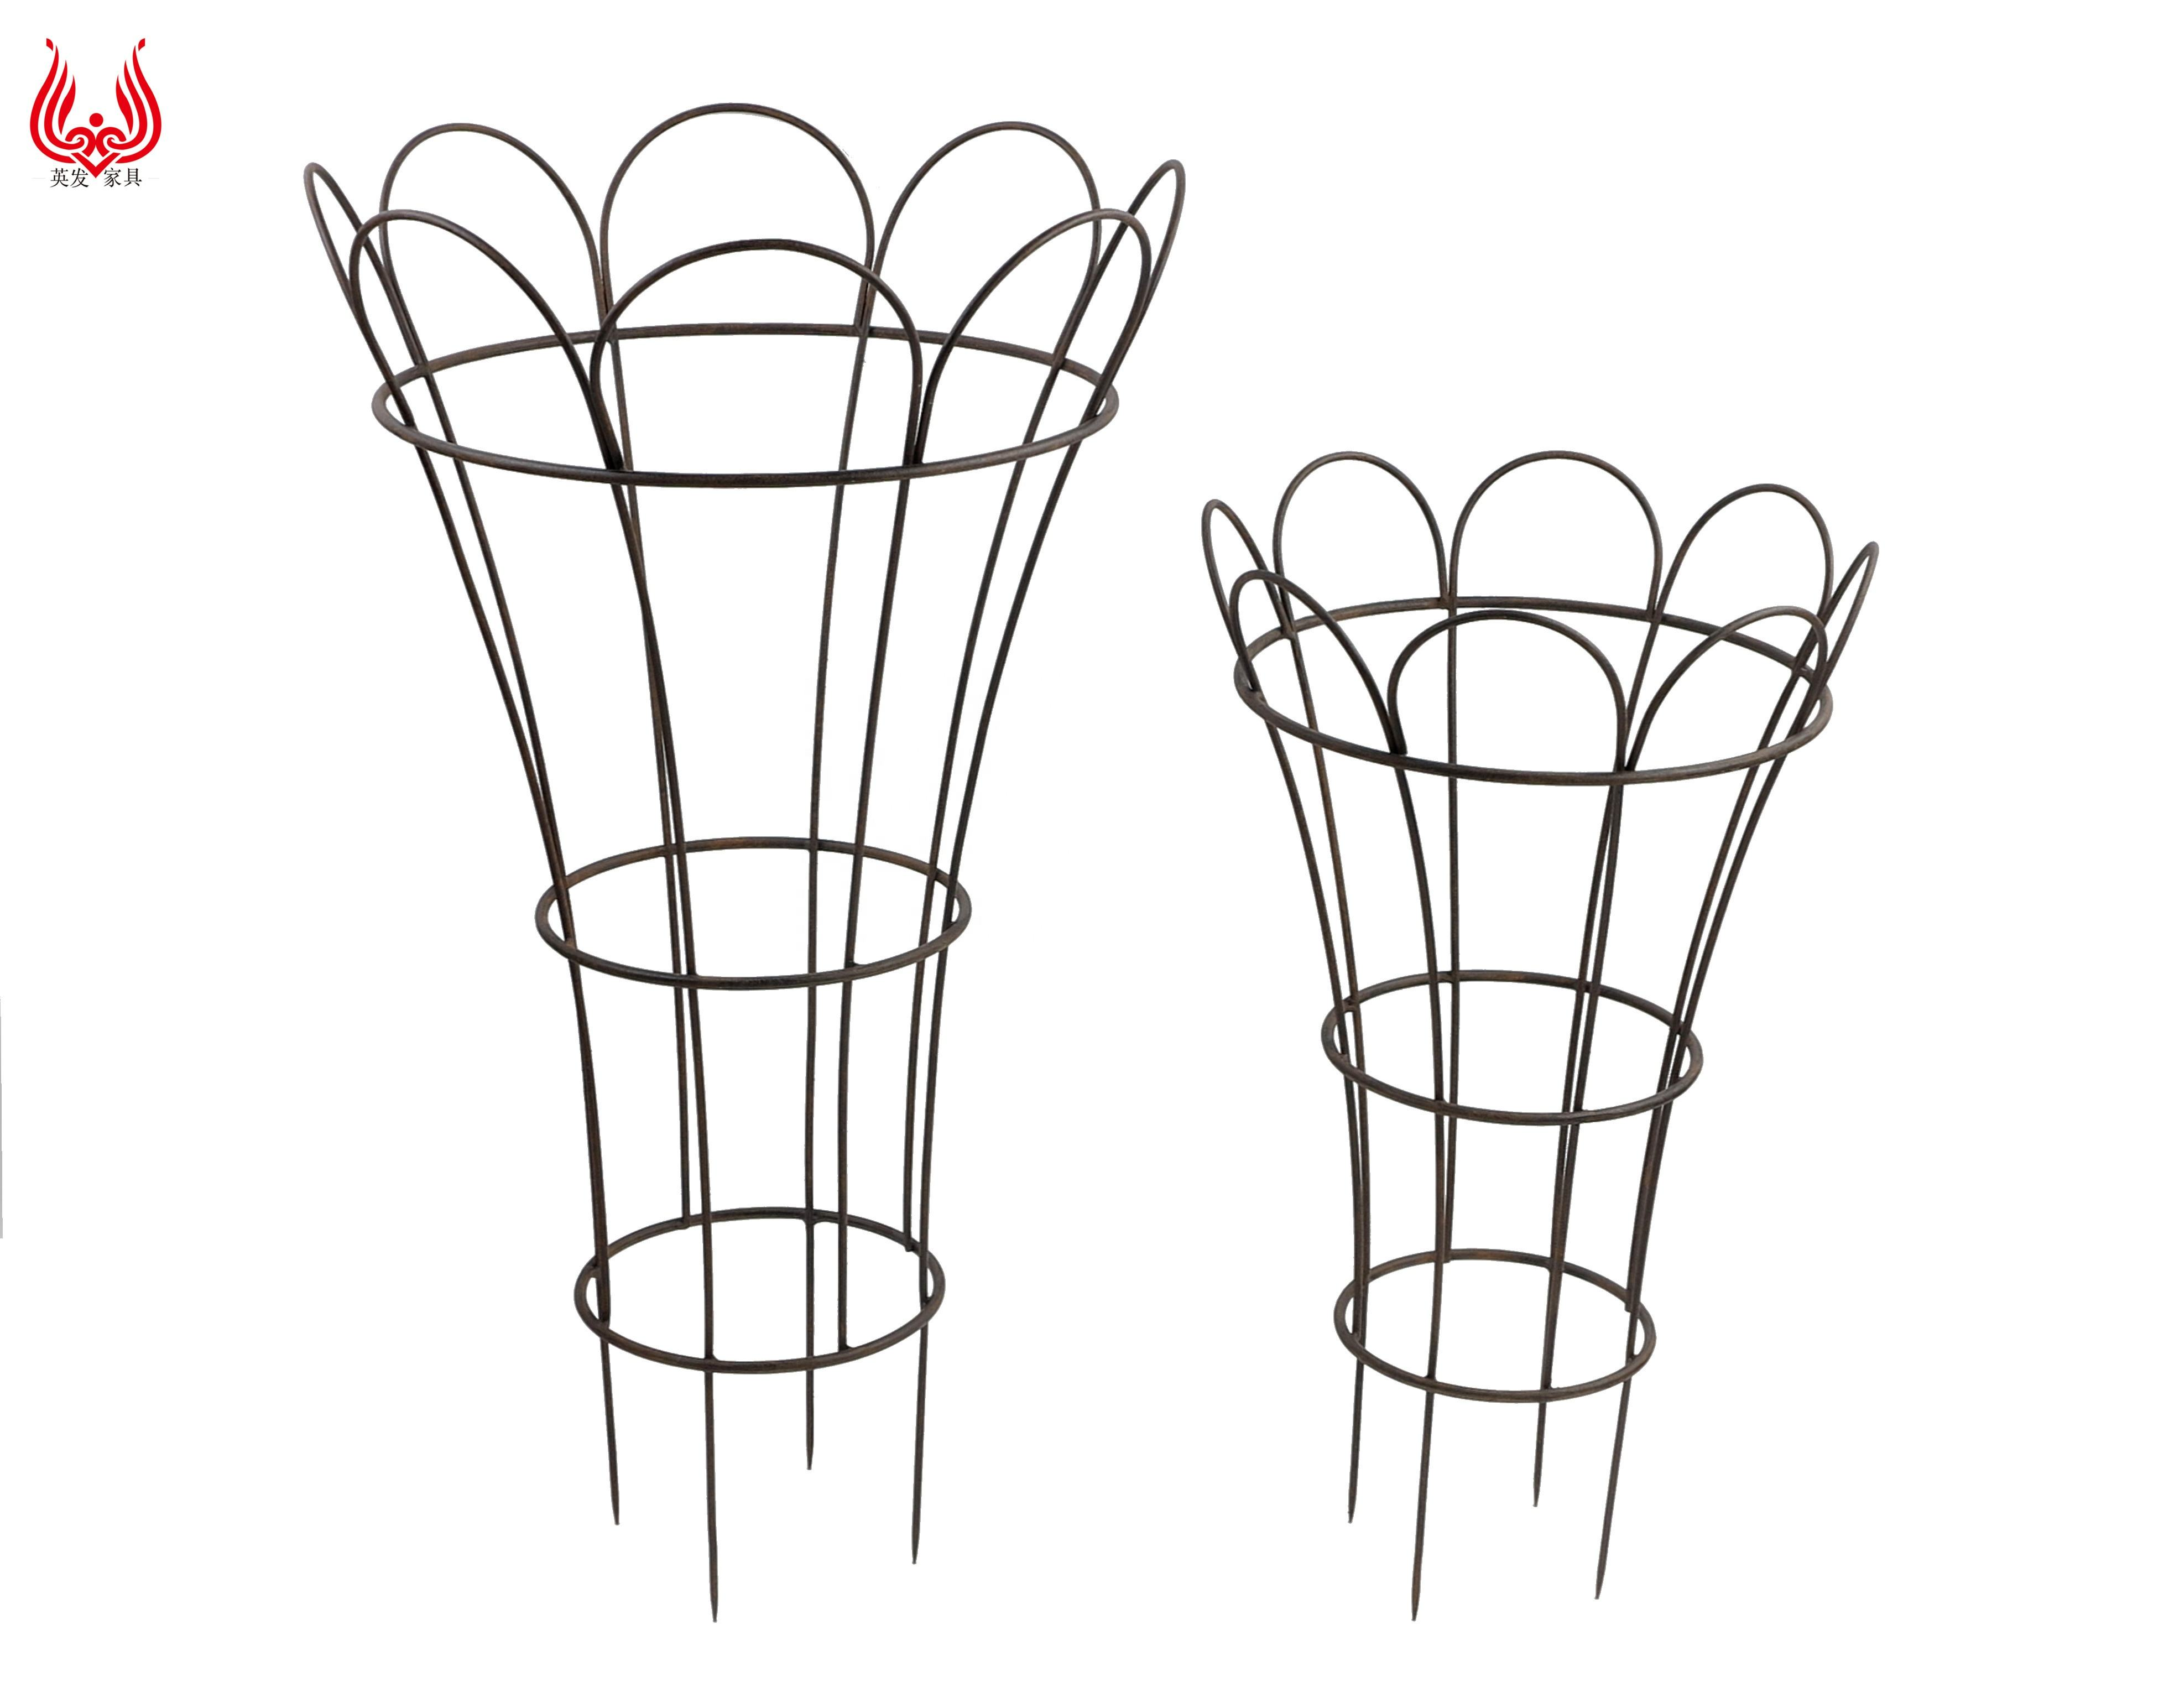 YINFA Factory Direct Sale S/2 Open Garden Trellis Plant Support Metal Stakes for Garden Decor